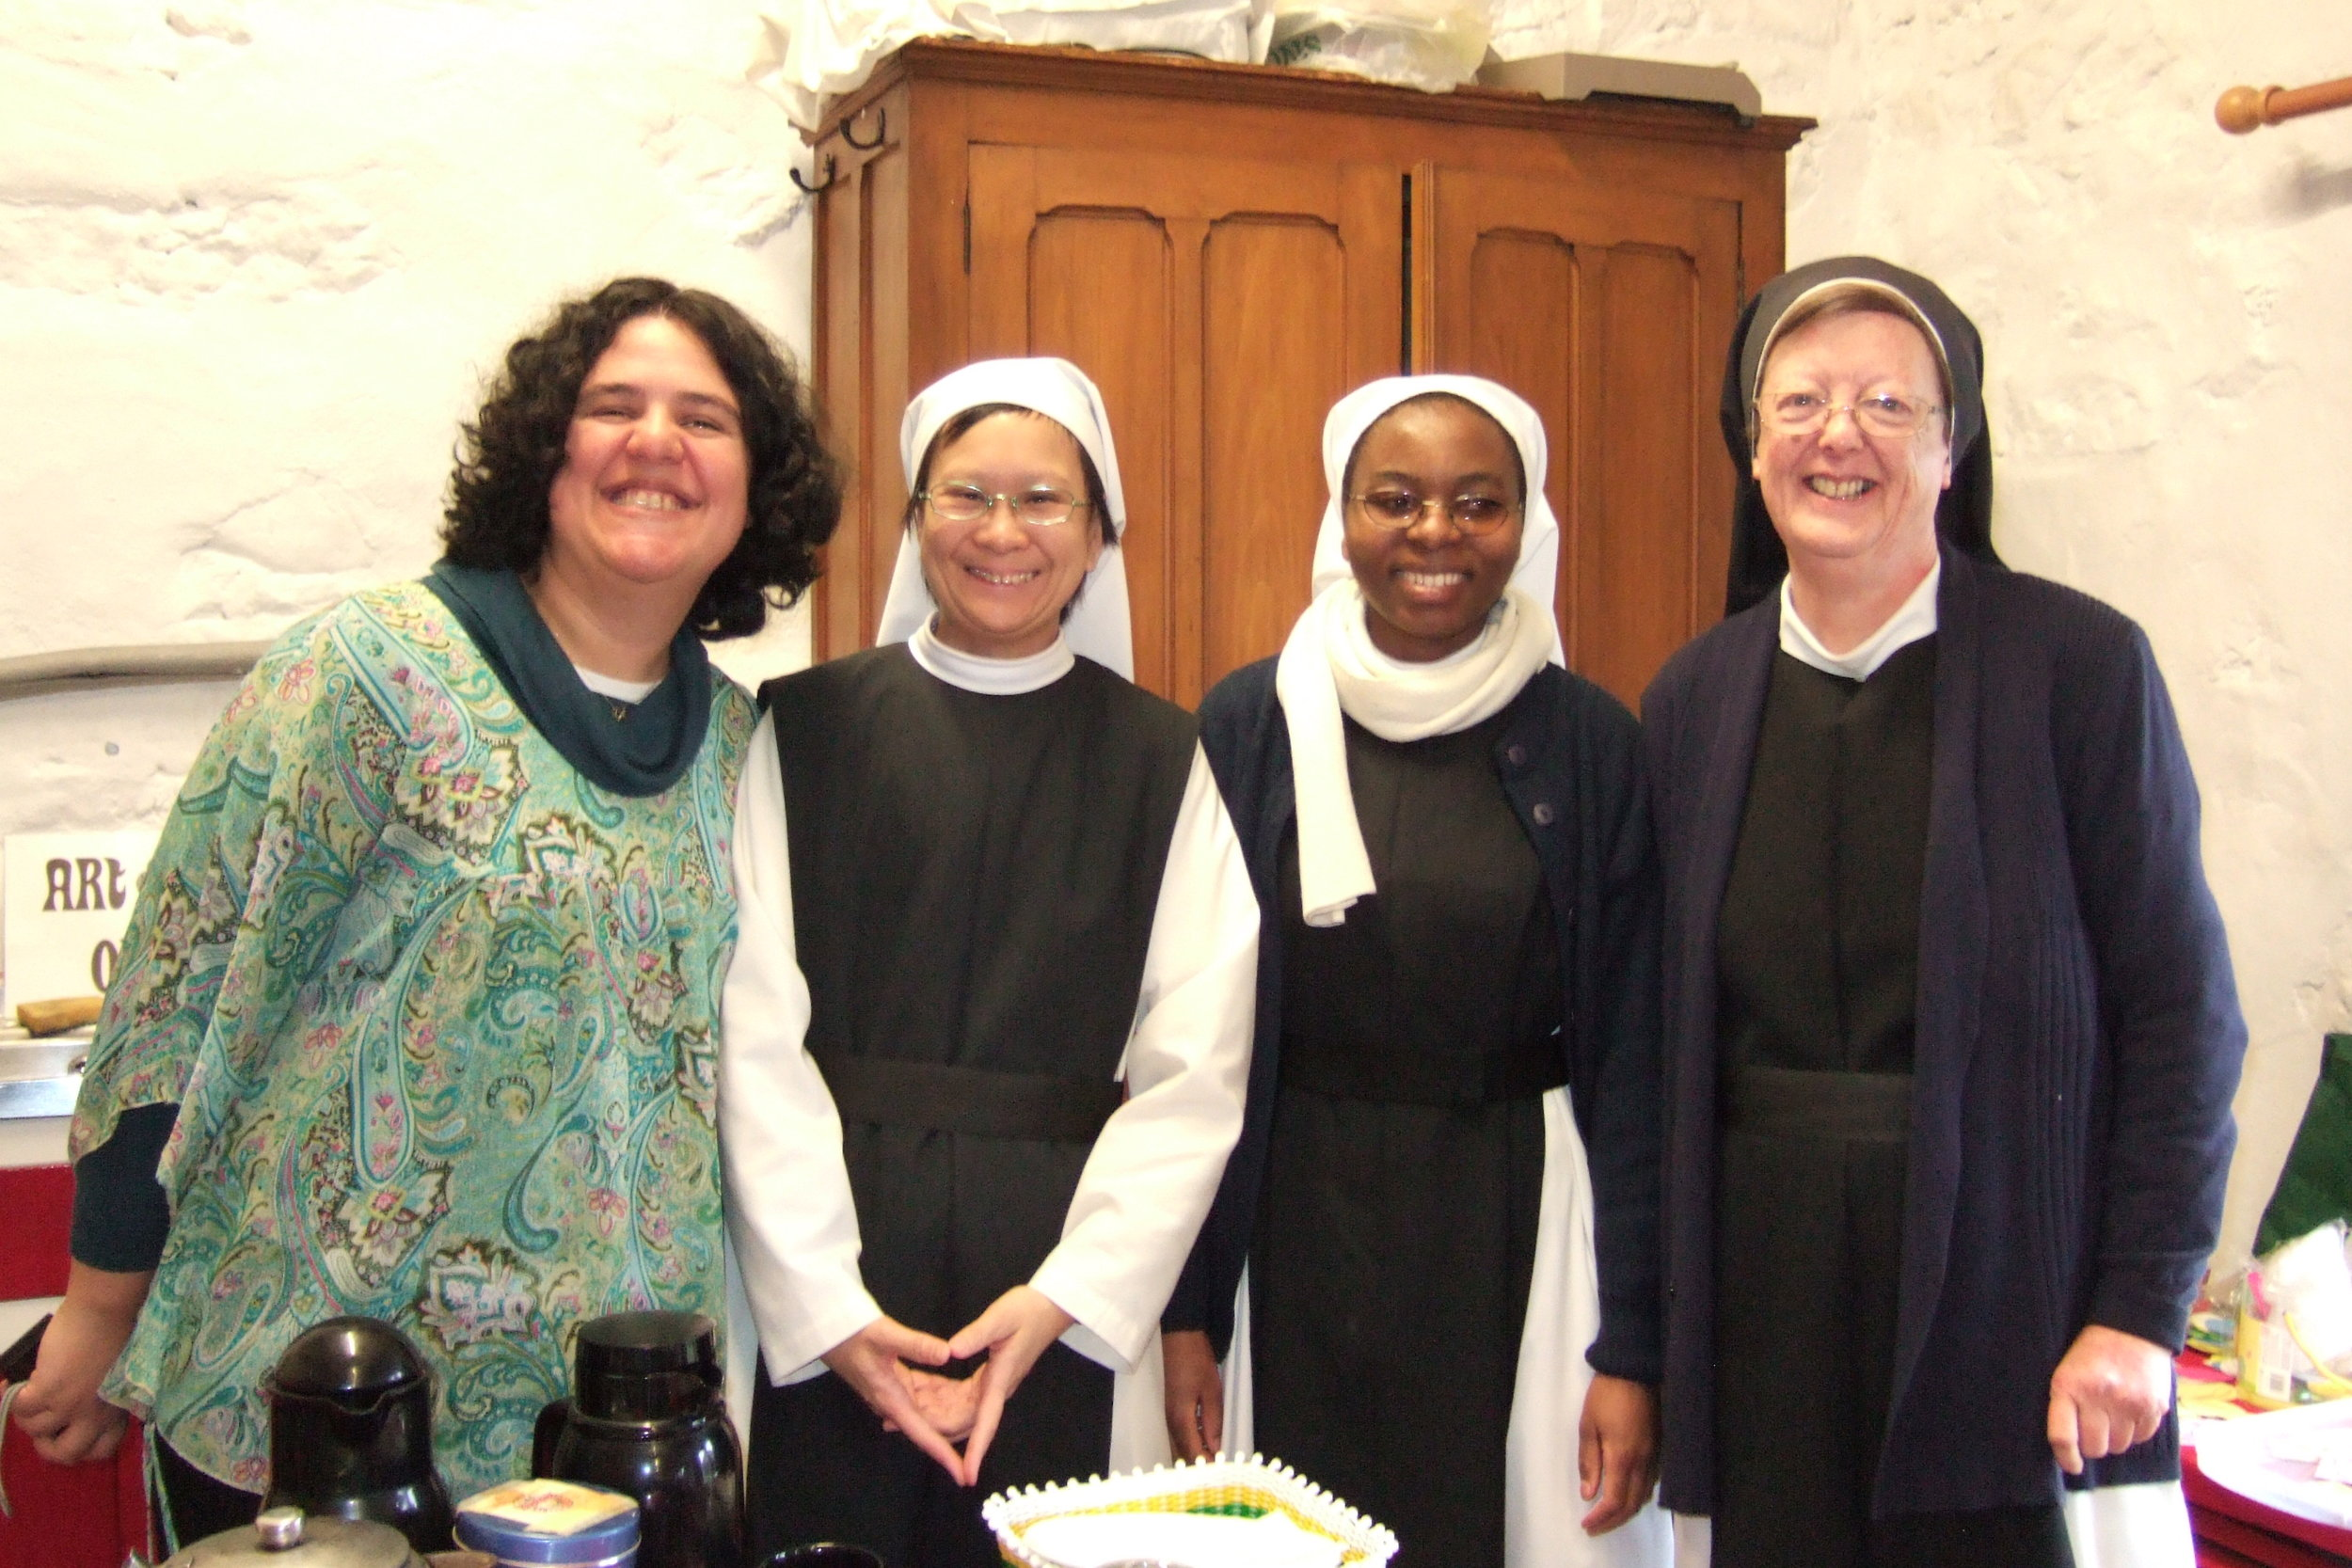 Members of the novitiate with the superior of Hyning